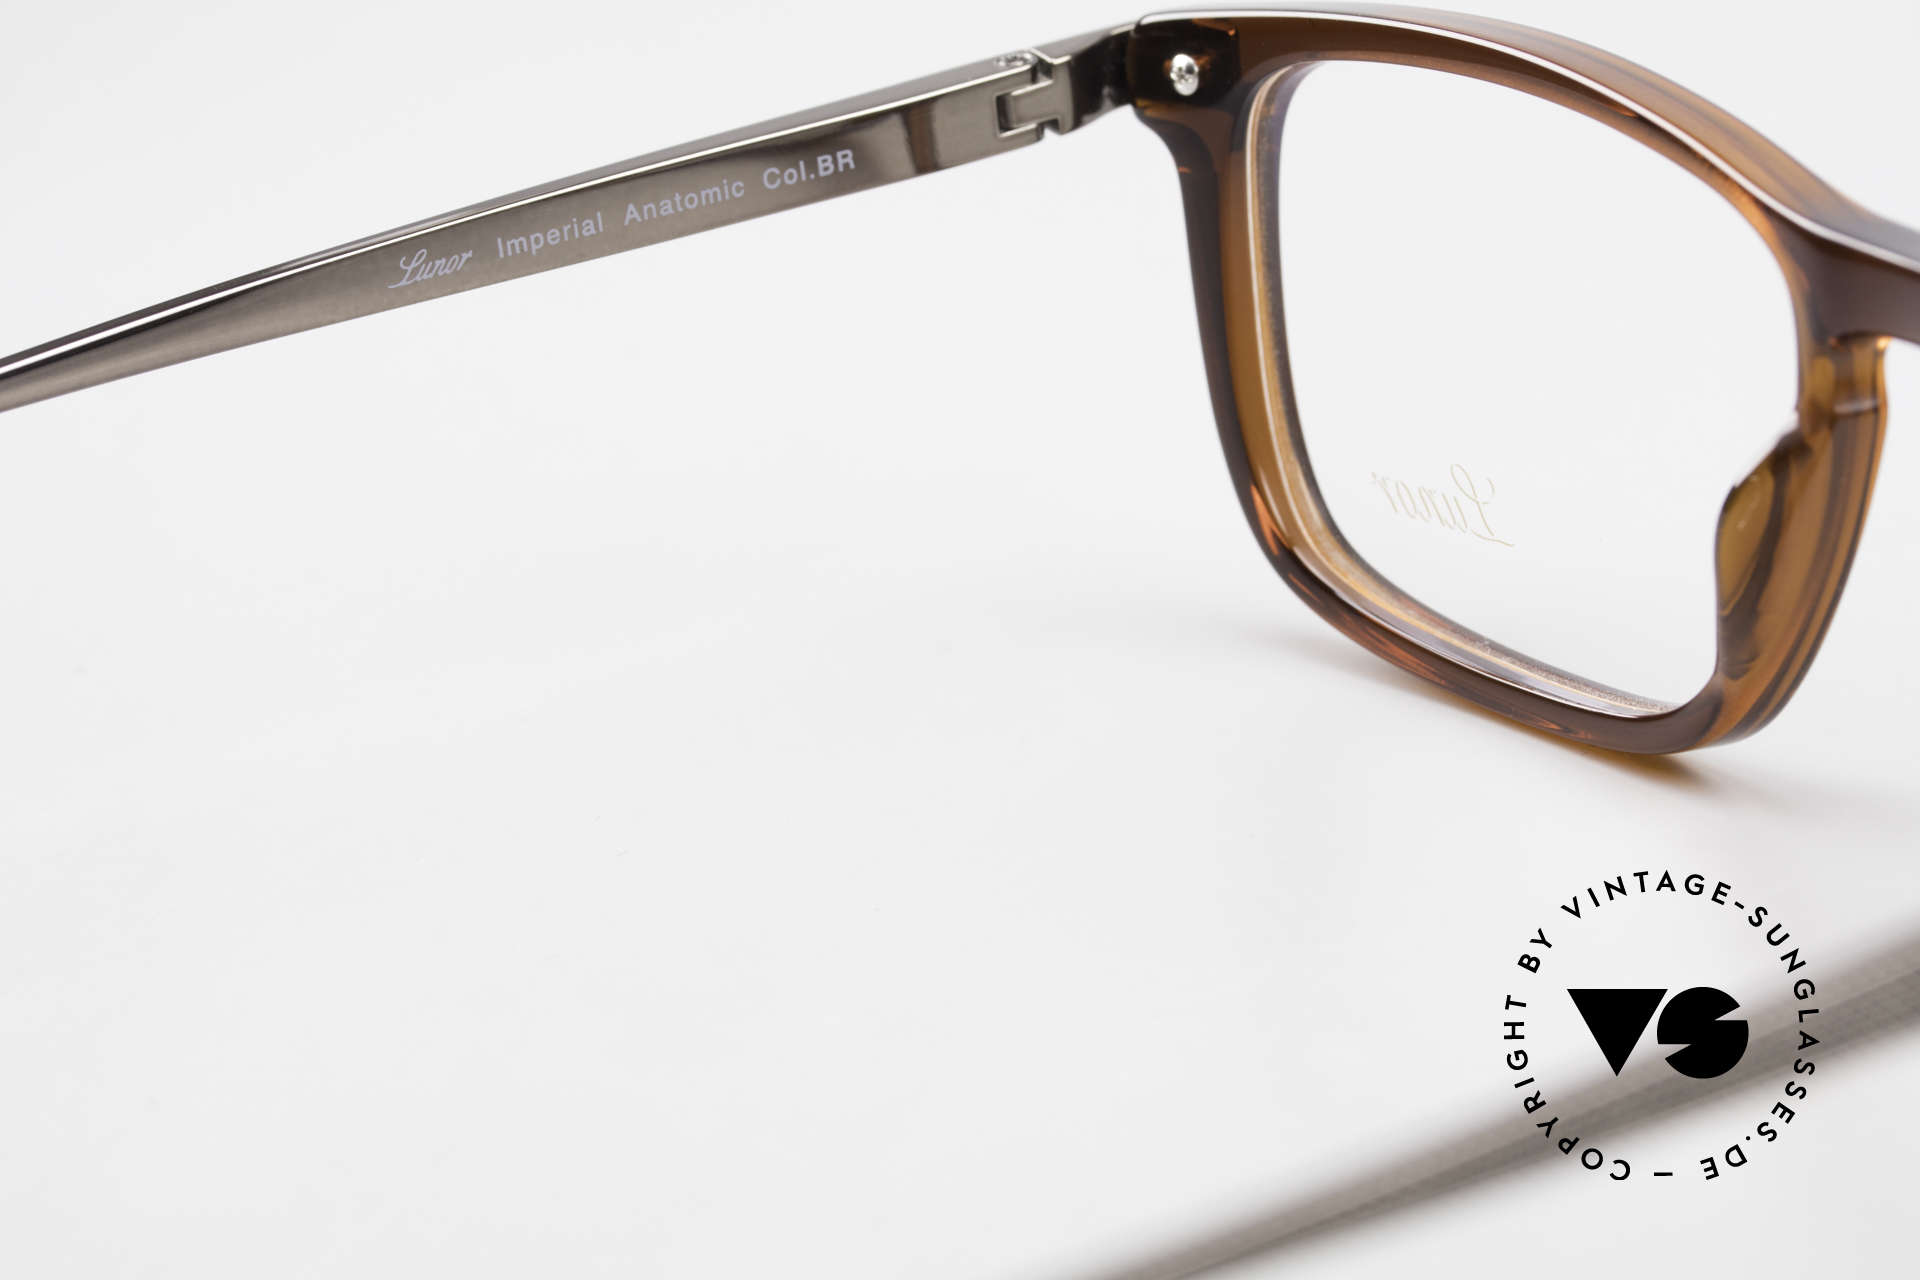 Lunor Imperial Anatomic Titanium Frame 2012 Unisex, timeless unisex model of the Lunor Collection from 2012, Made for Men and Women